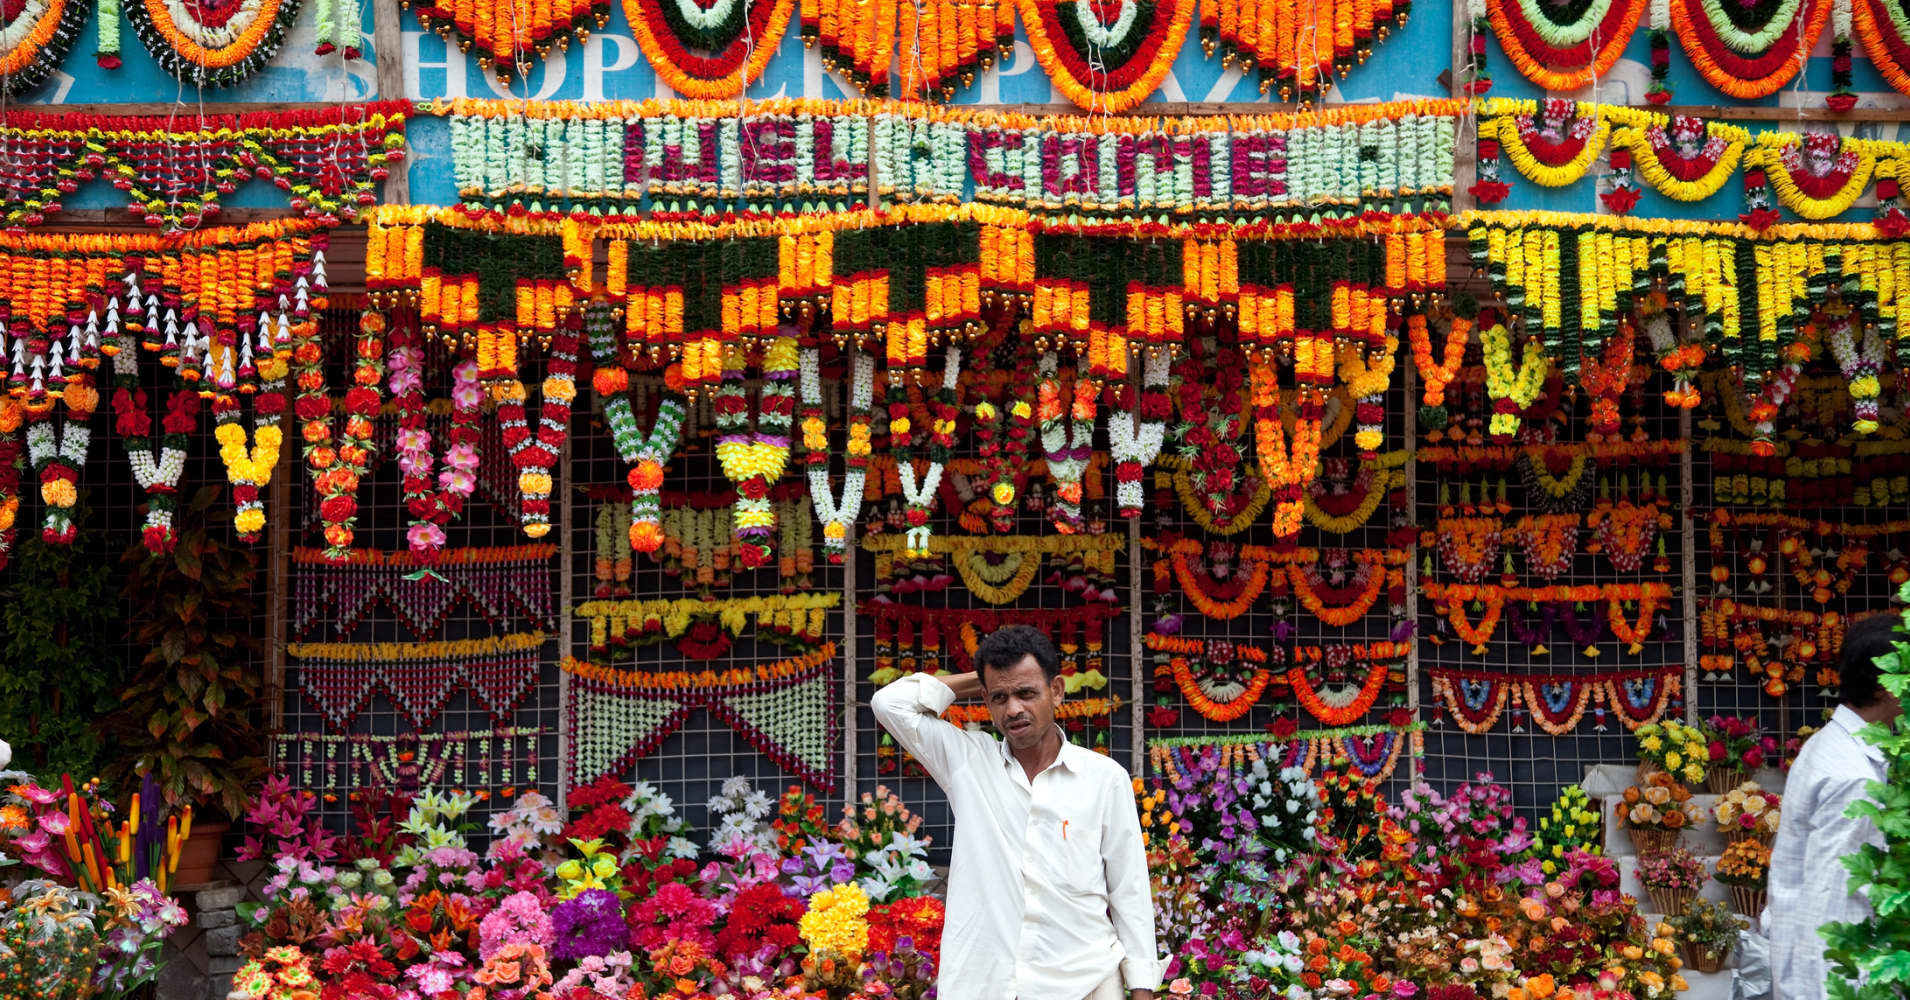 Man tending flower stall on Mutton Street at Chor Bazaar in Mumbai, India